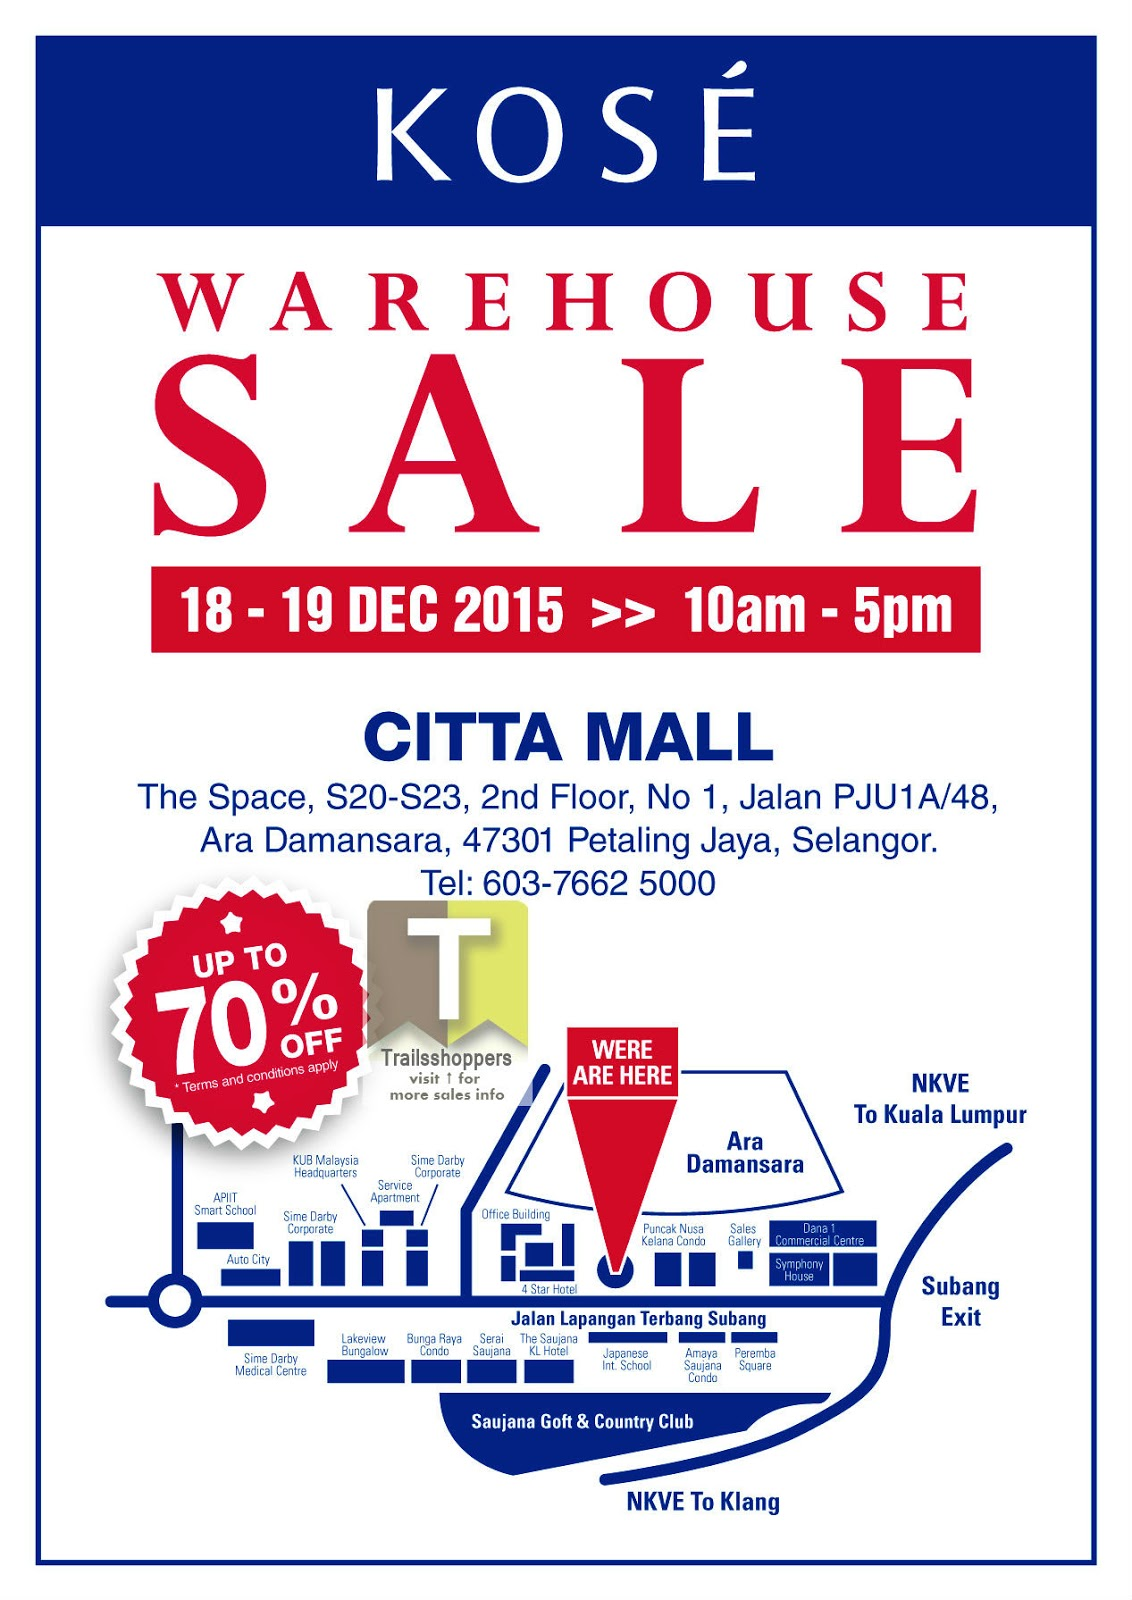 KOSE Warehouse Sale 2015 pj ara damansara